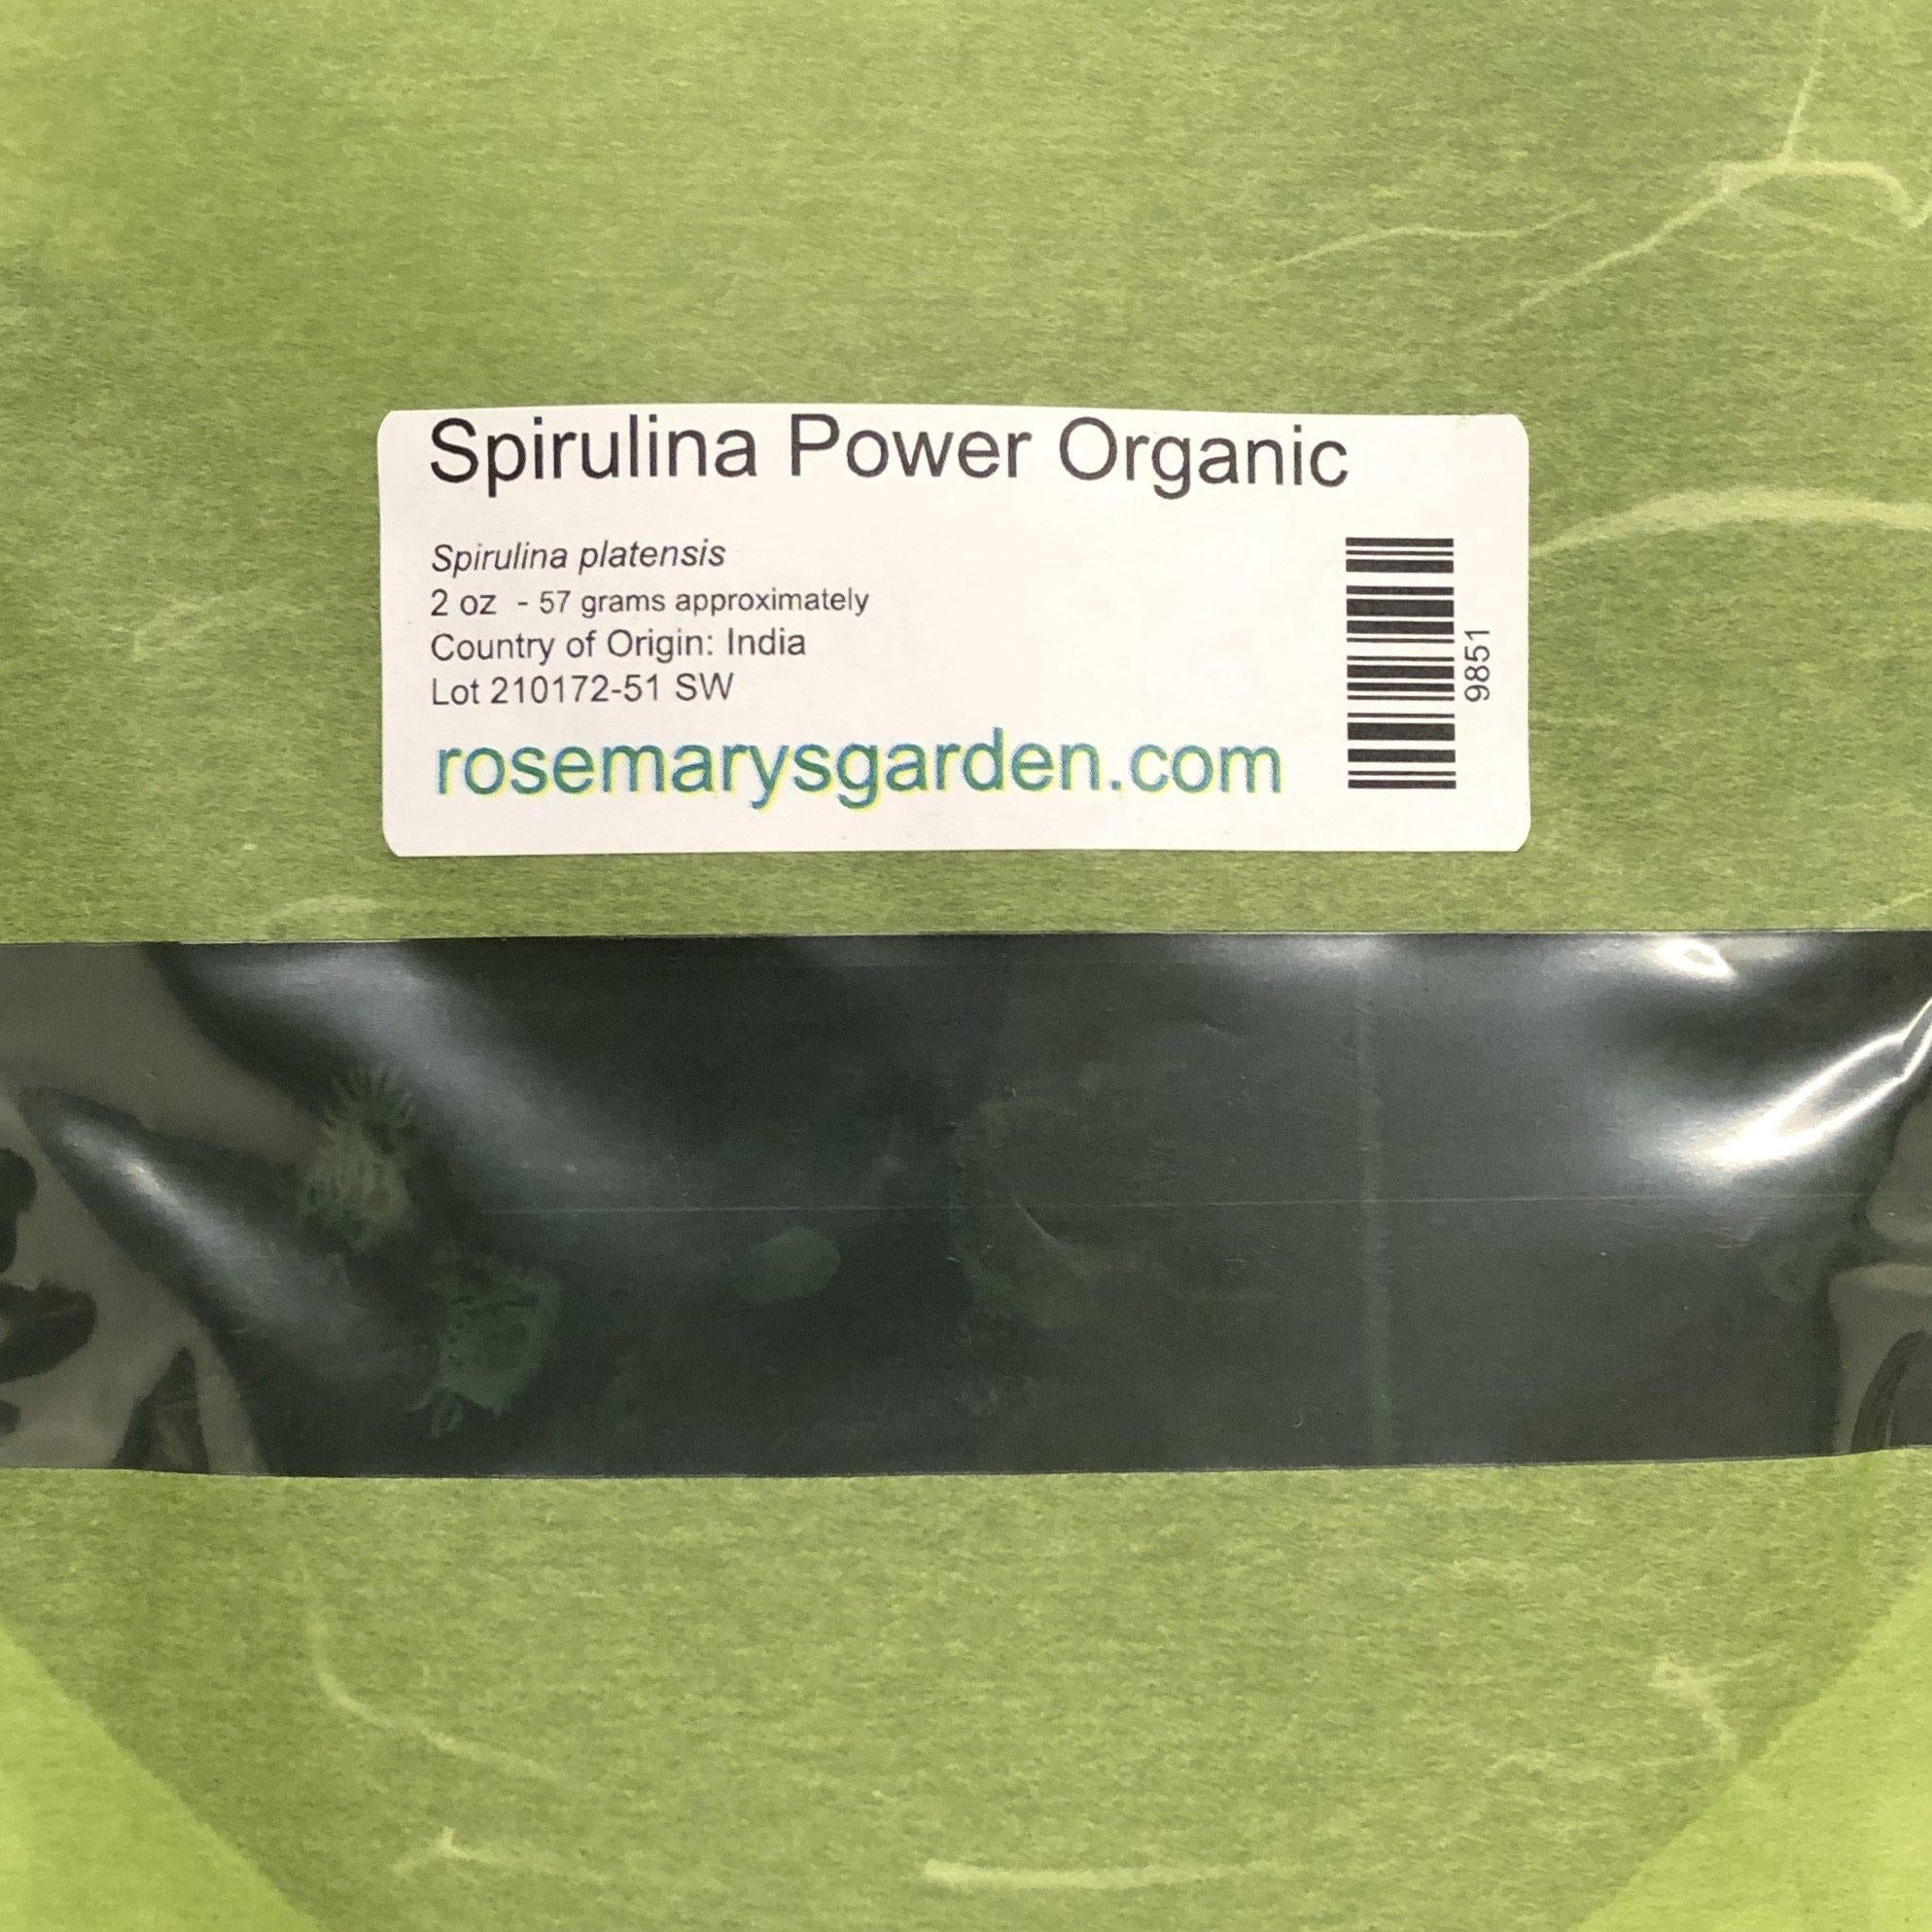 Spirulina Powder Organic 2oz